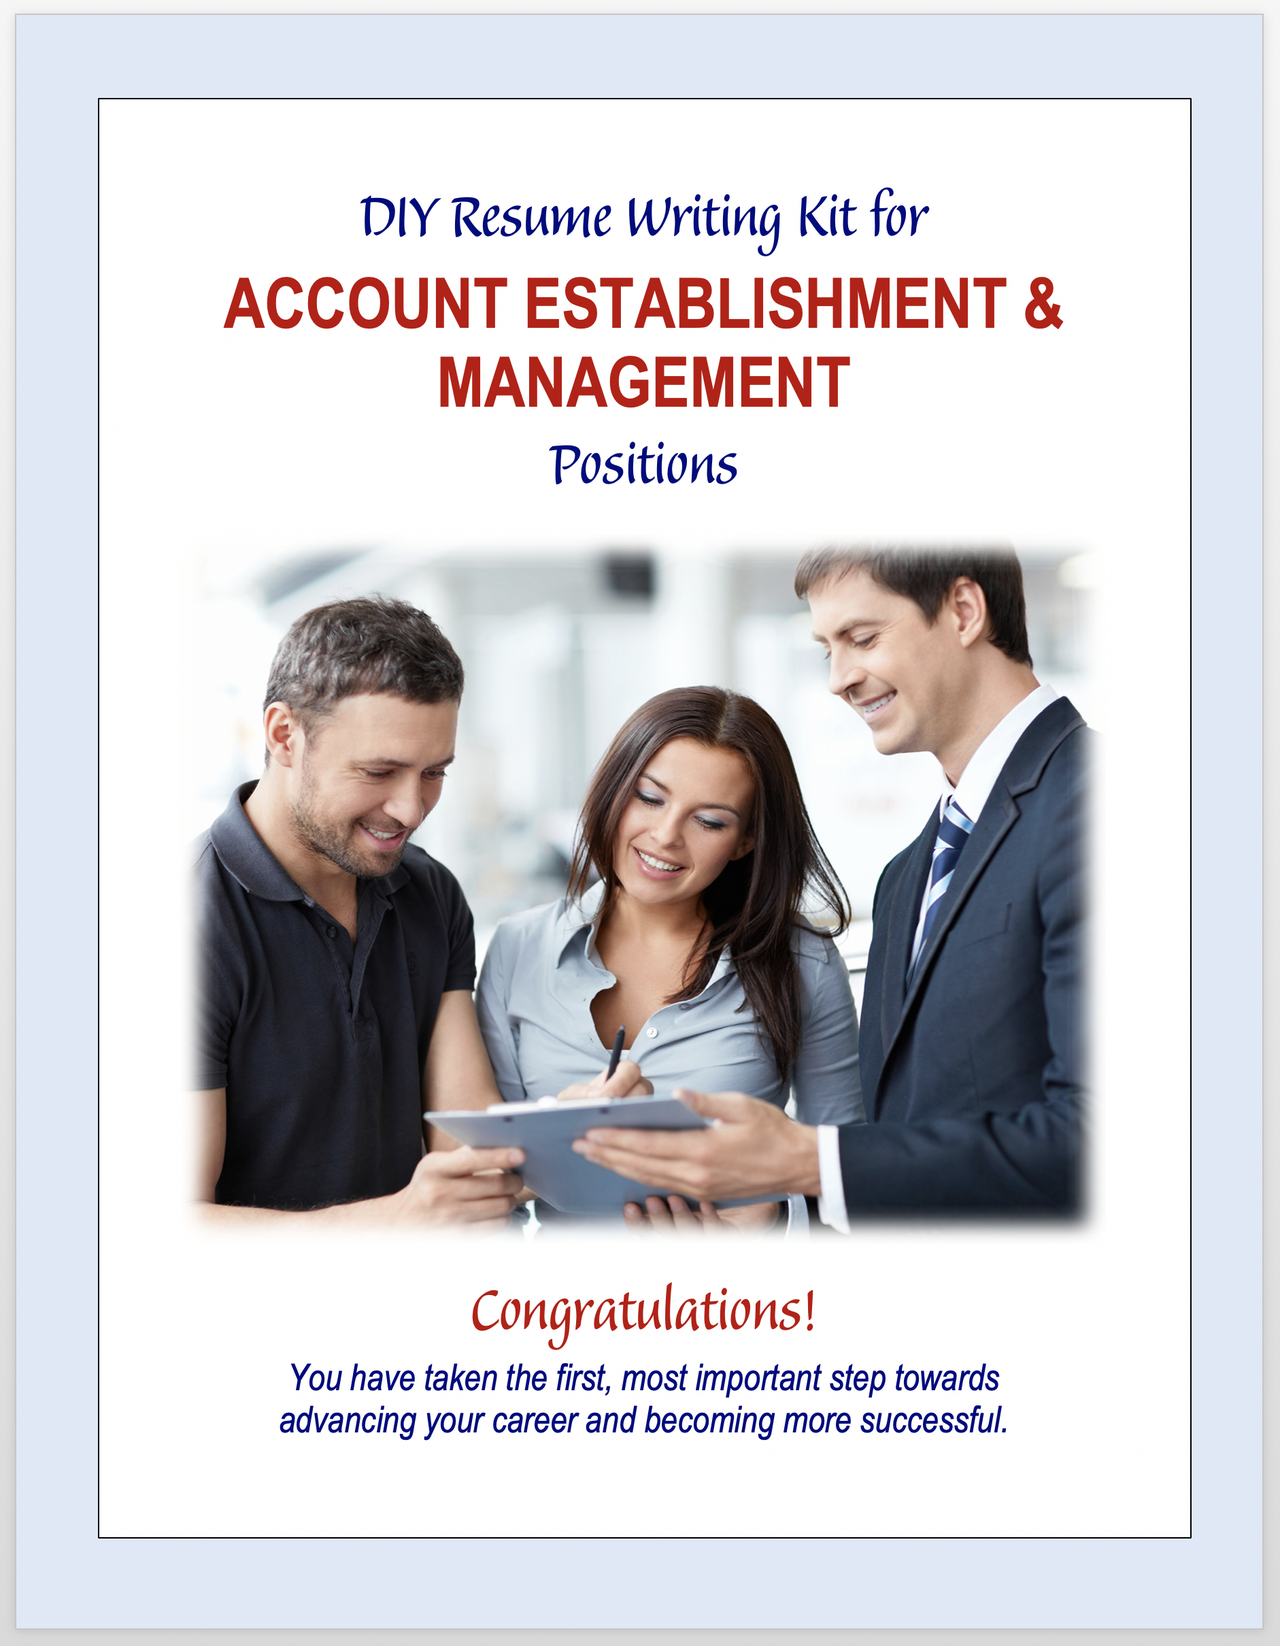 account establishment & management.png